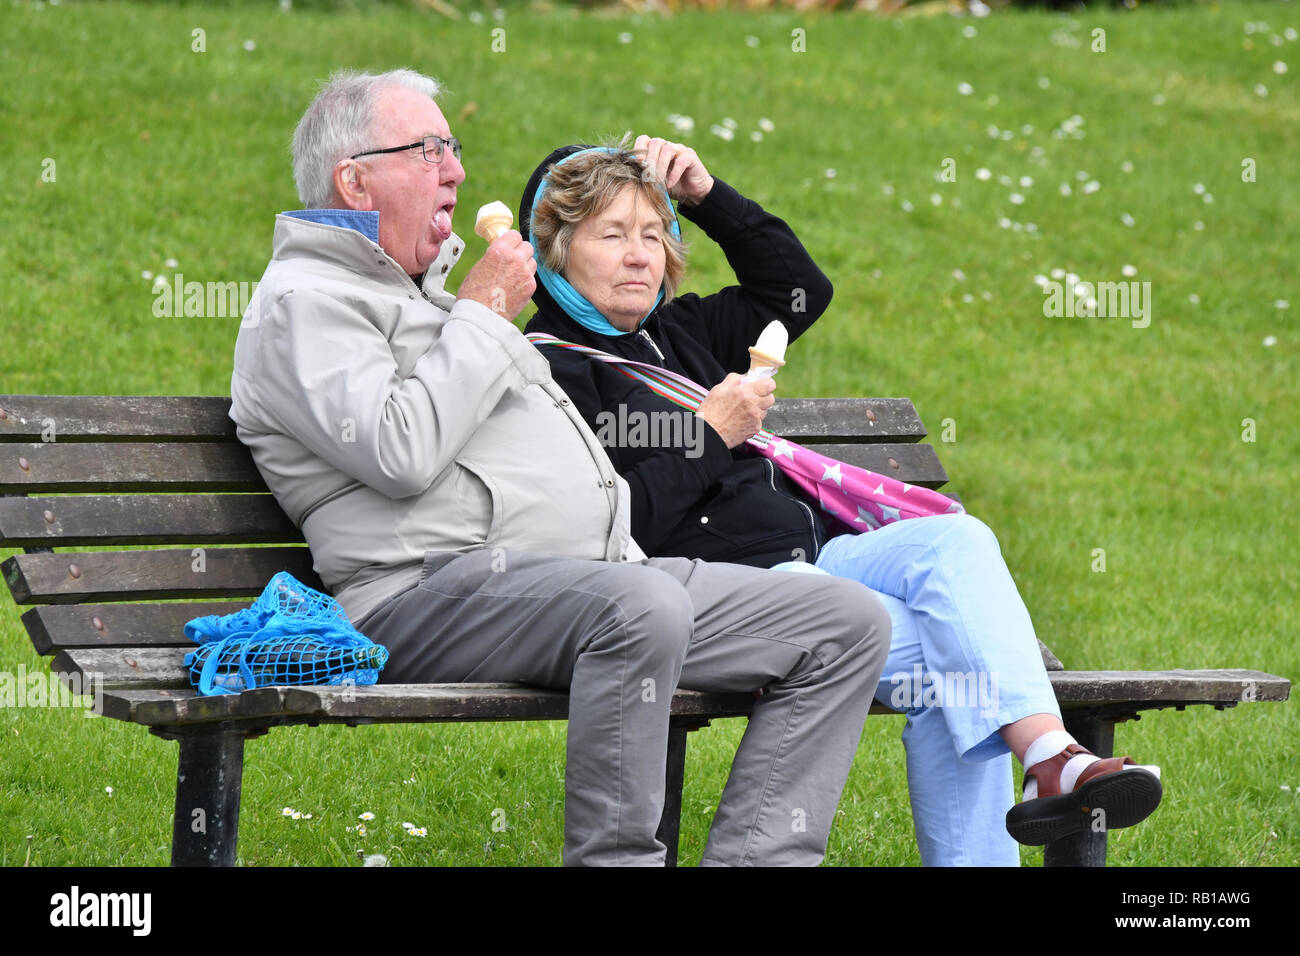 Middle aged to elderly couple of people sitting on a wooden park bench wearing coats eating ice creams, on a cold day in Spring in the UK. - Stock Image